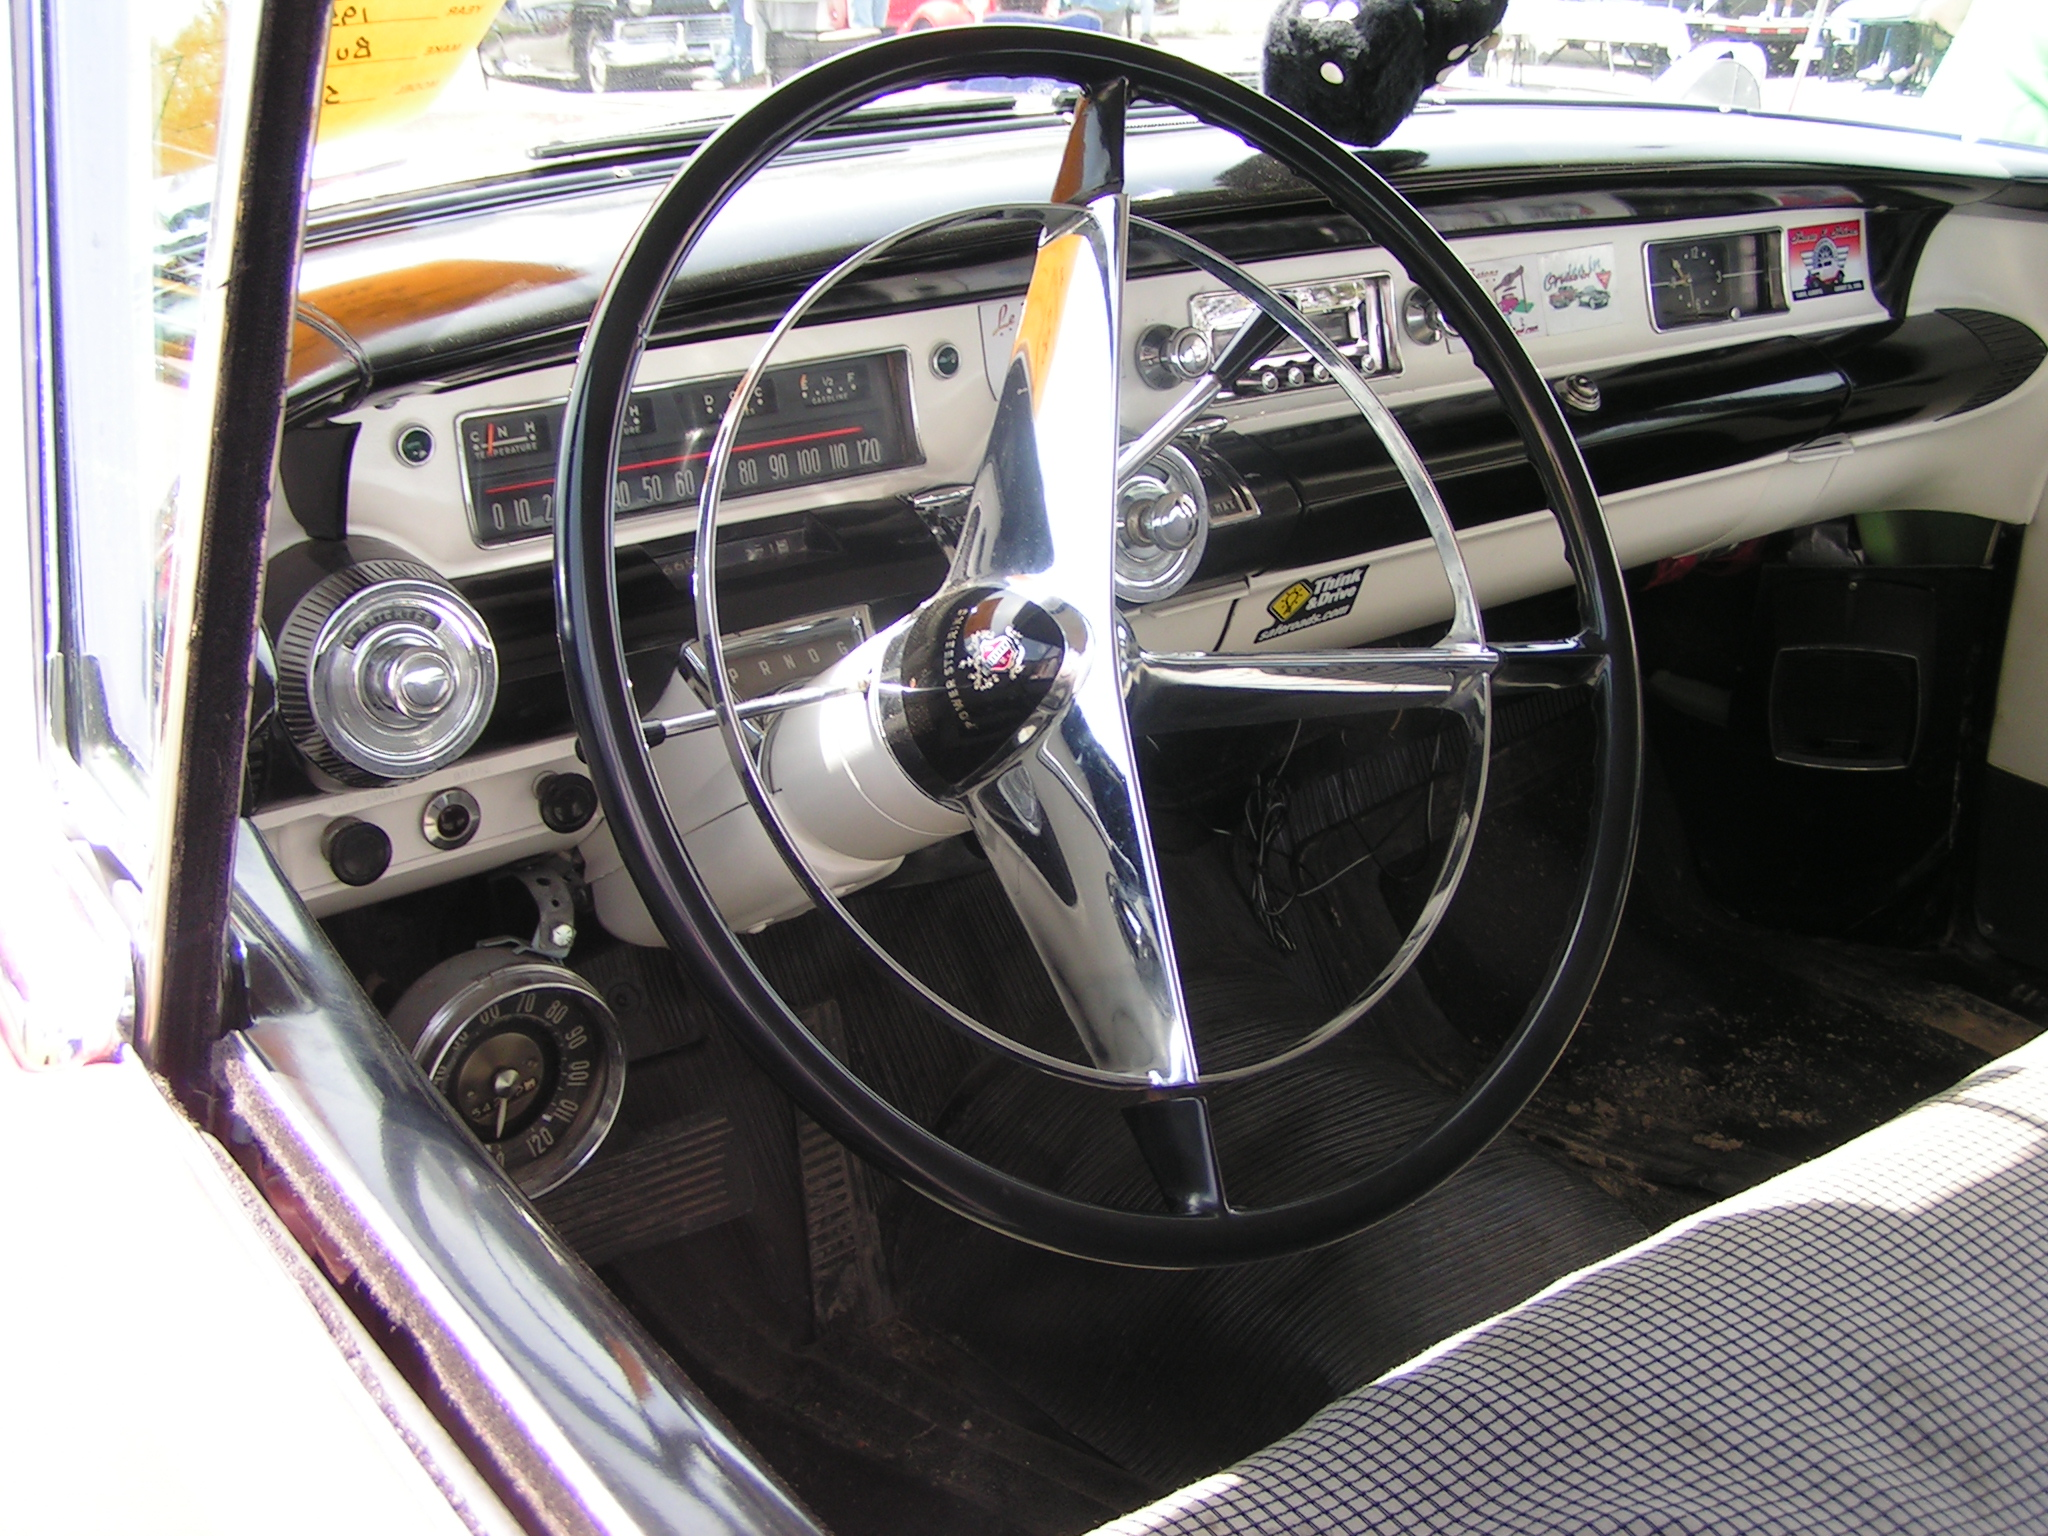 File:1958 Buick Special (2608919825) jpg - Wikimedia Commons